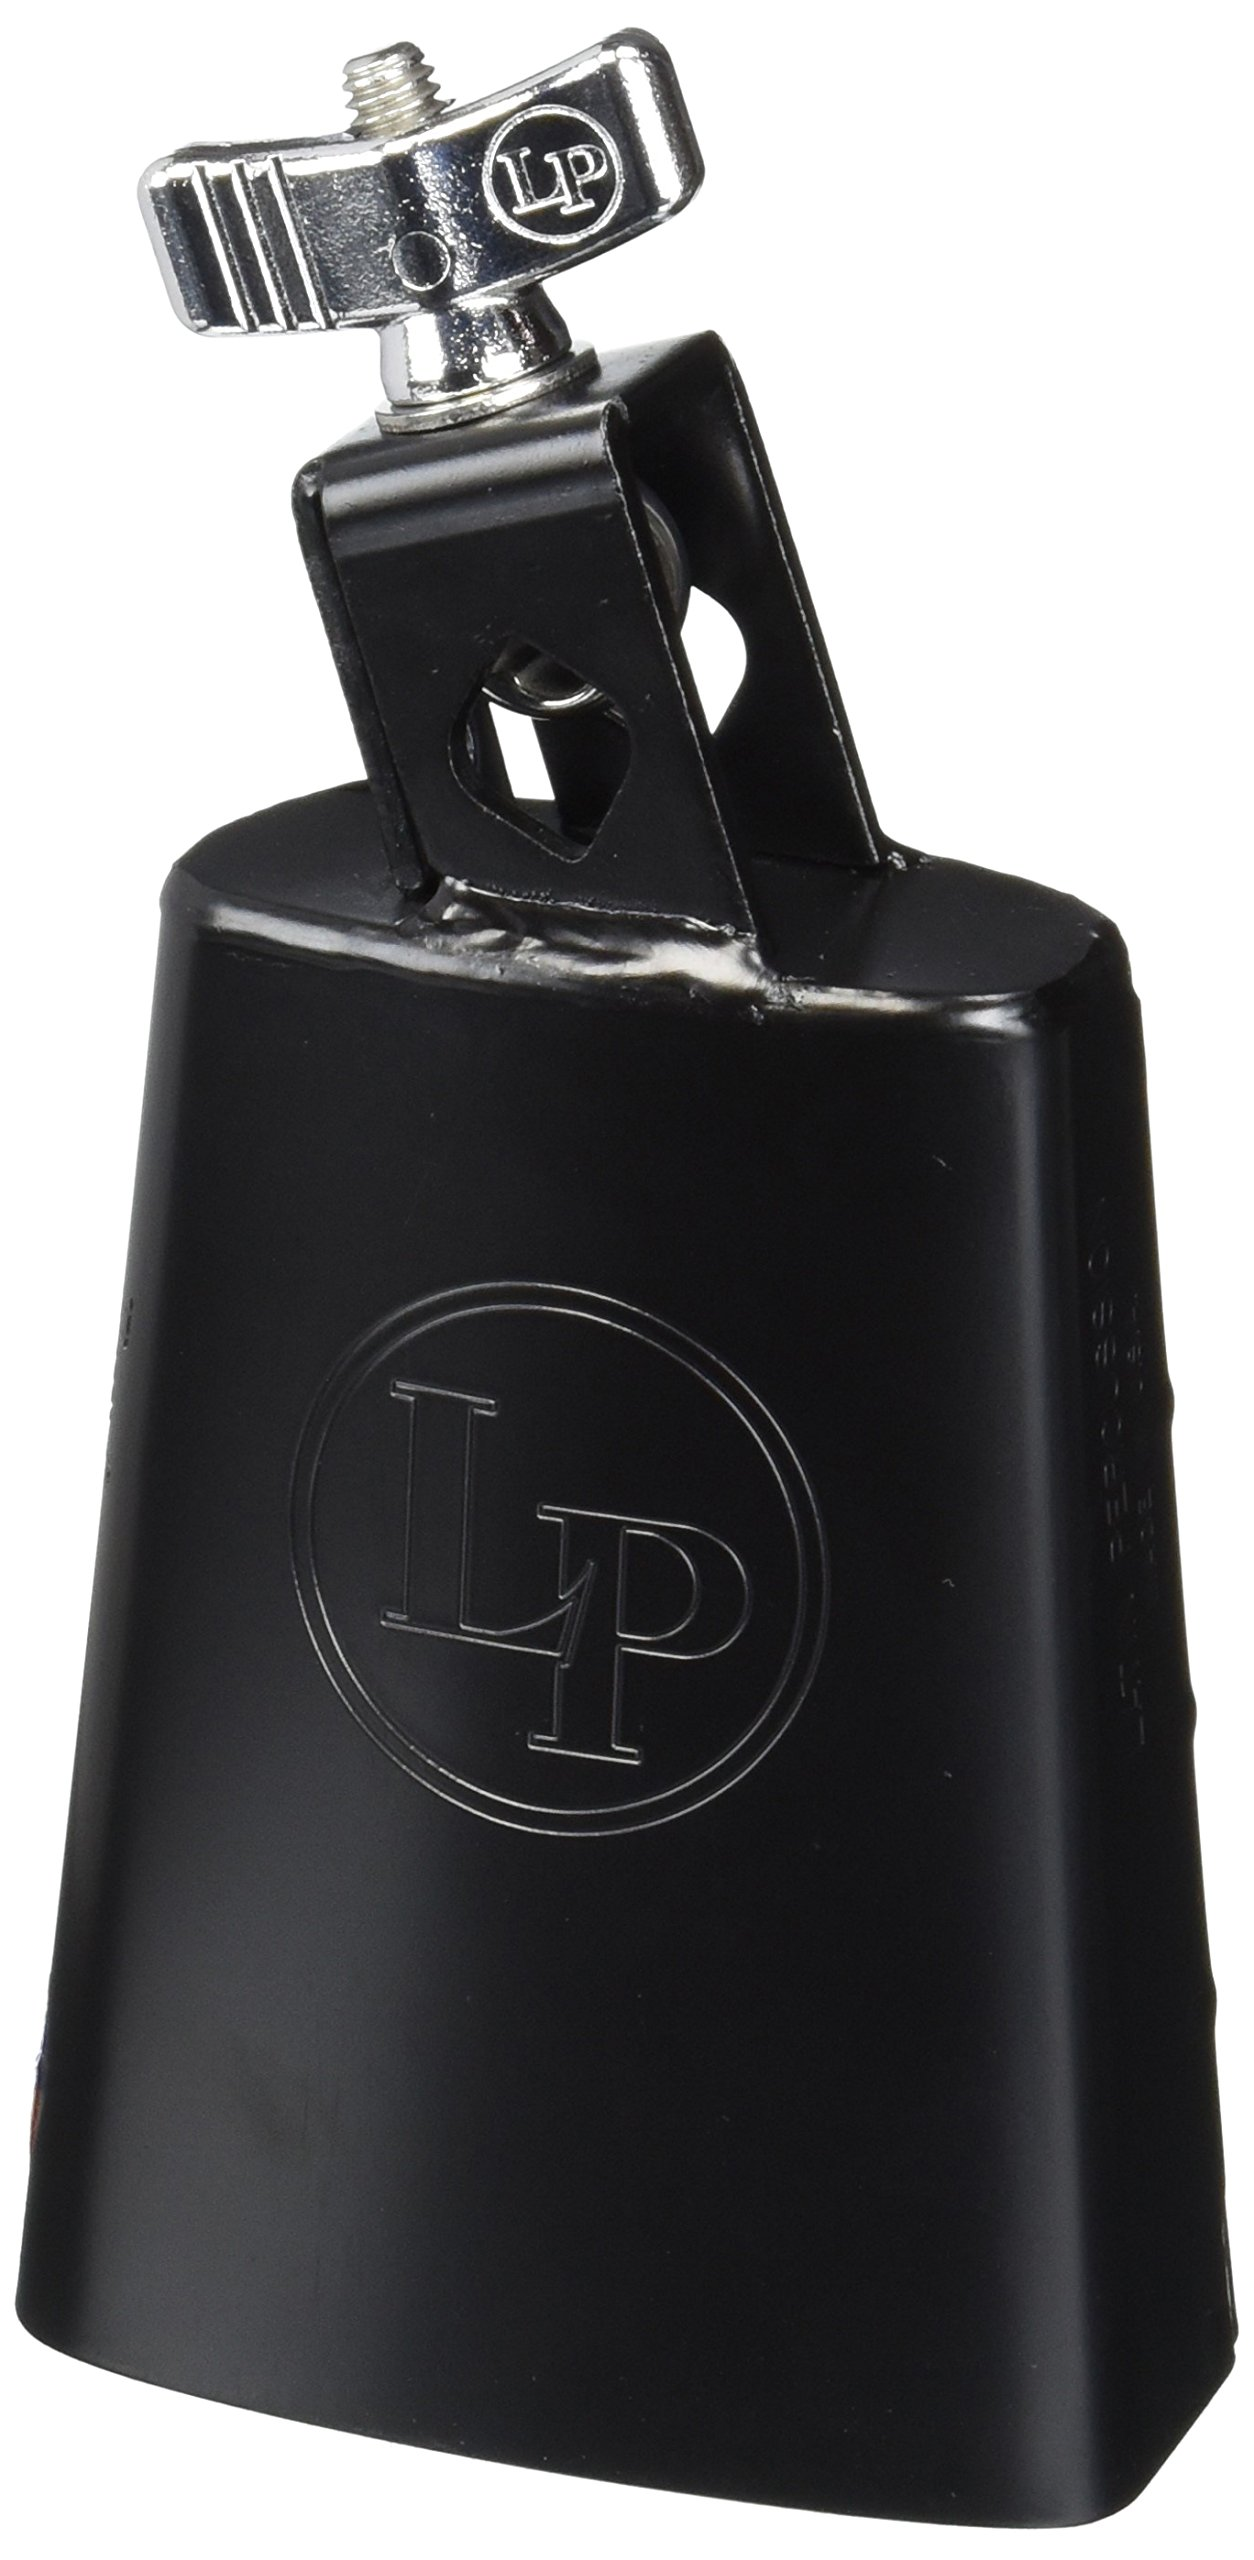 Latin Percussion LP204A Handheld Cowbell with Mount, Black